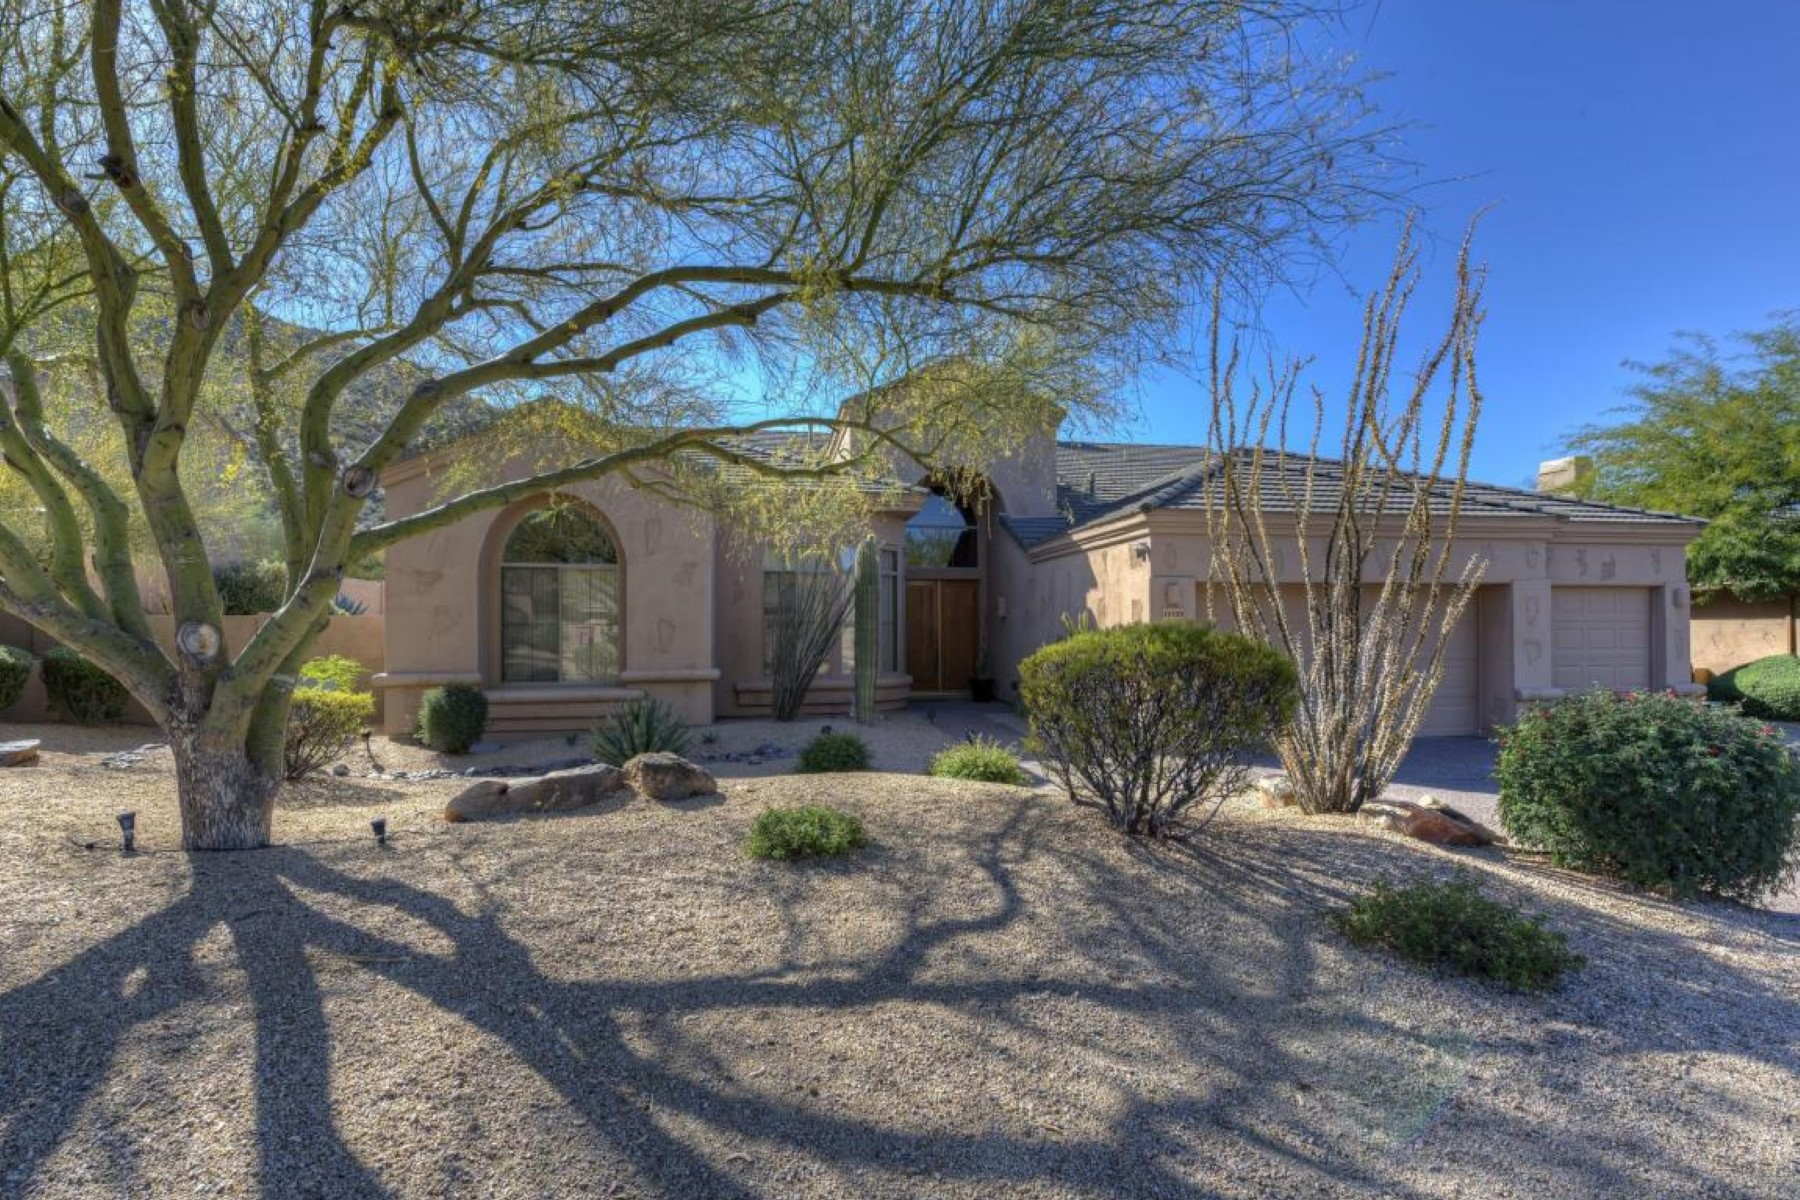 Single Family Home for Rent at Designer home has been updated with a soft contemporary look 11773 E Mariposa Grande Dr, Scottsdale, Arizona, 85255 United States